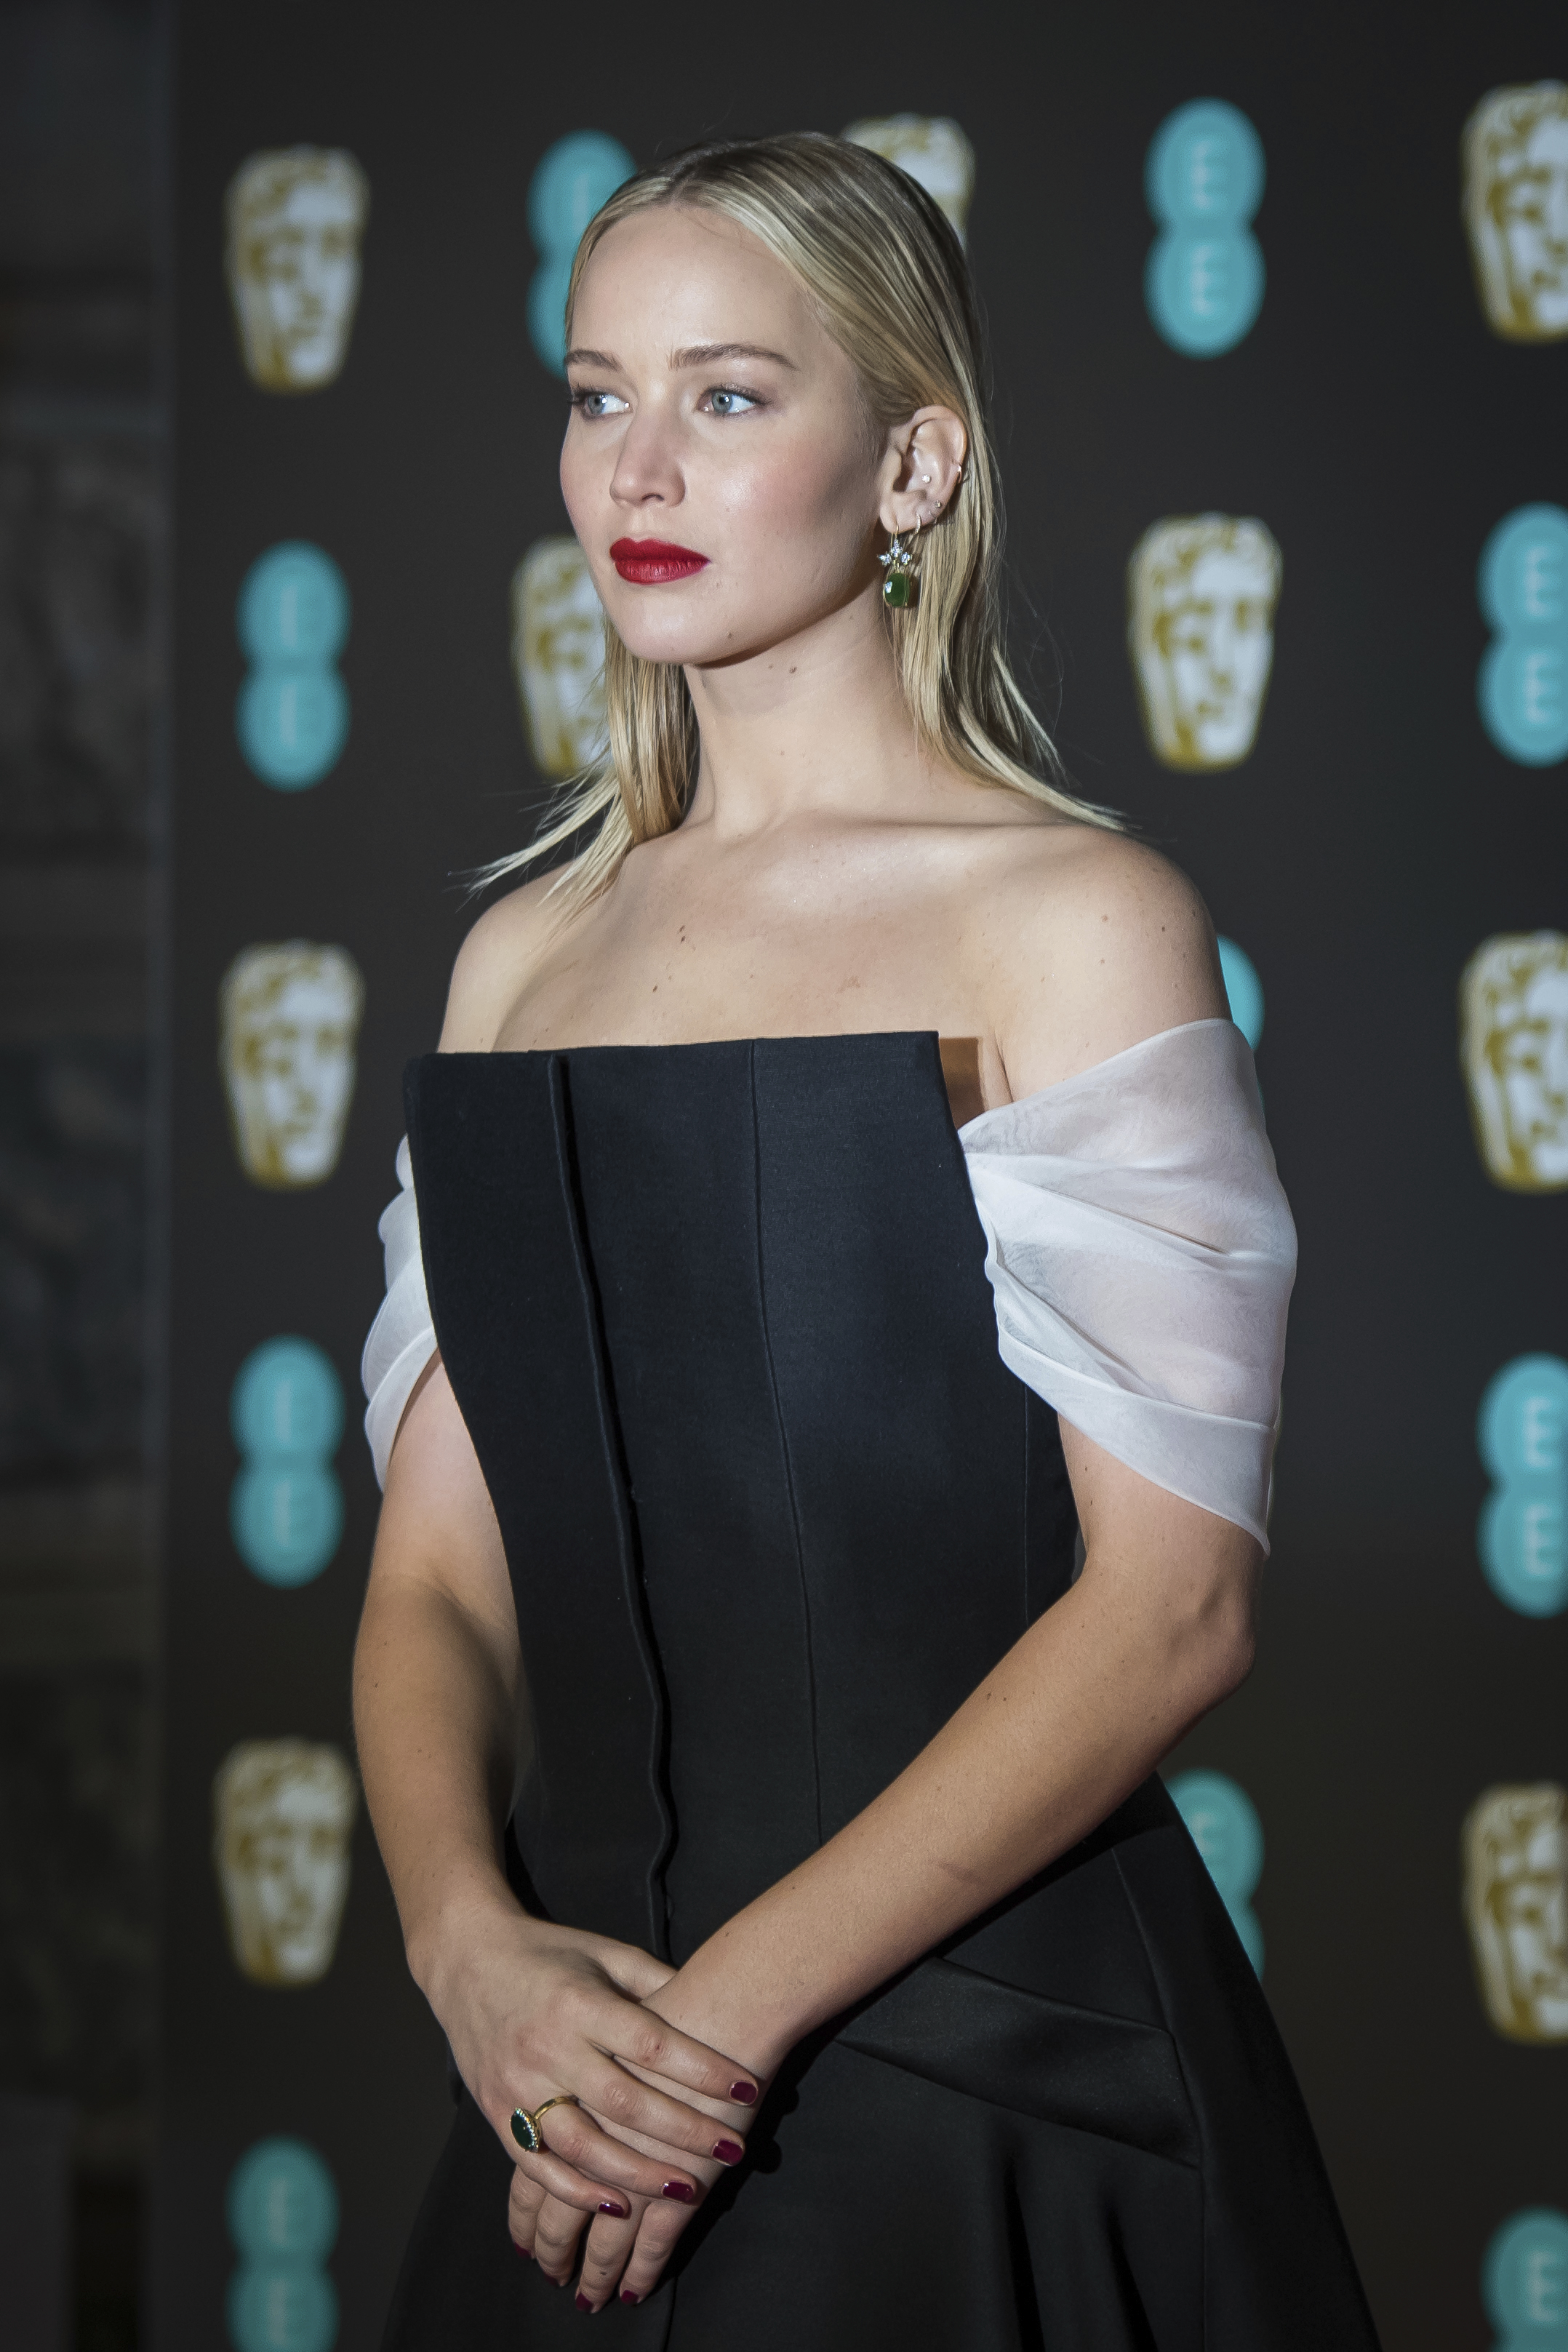 <div class='meta'><div class='origin-logo' data-origin='AP'></div><span class='caption-text' data-credit='Vianney Le Caer/Invision/AP'>Jennifer Lawrence poses for photographers upon arrival at the BAFTA Film Awards, in London, Sunday, Feb. 18, 2018.</span></div>